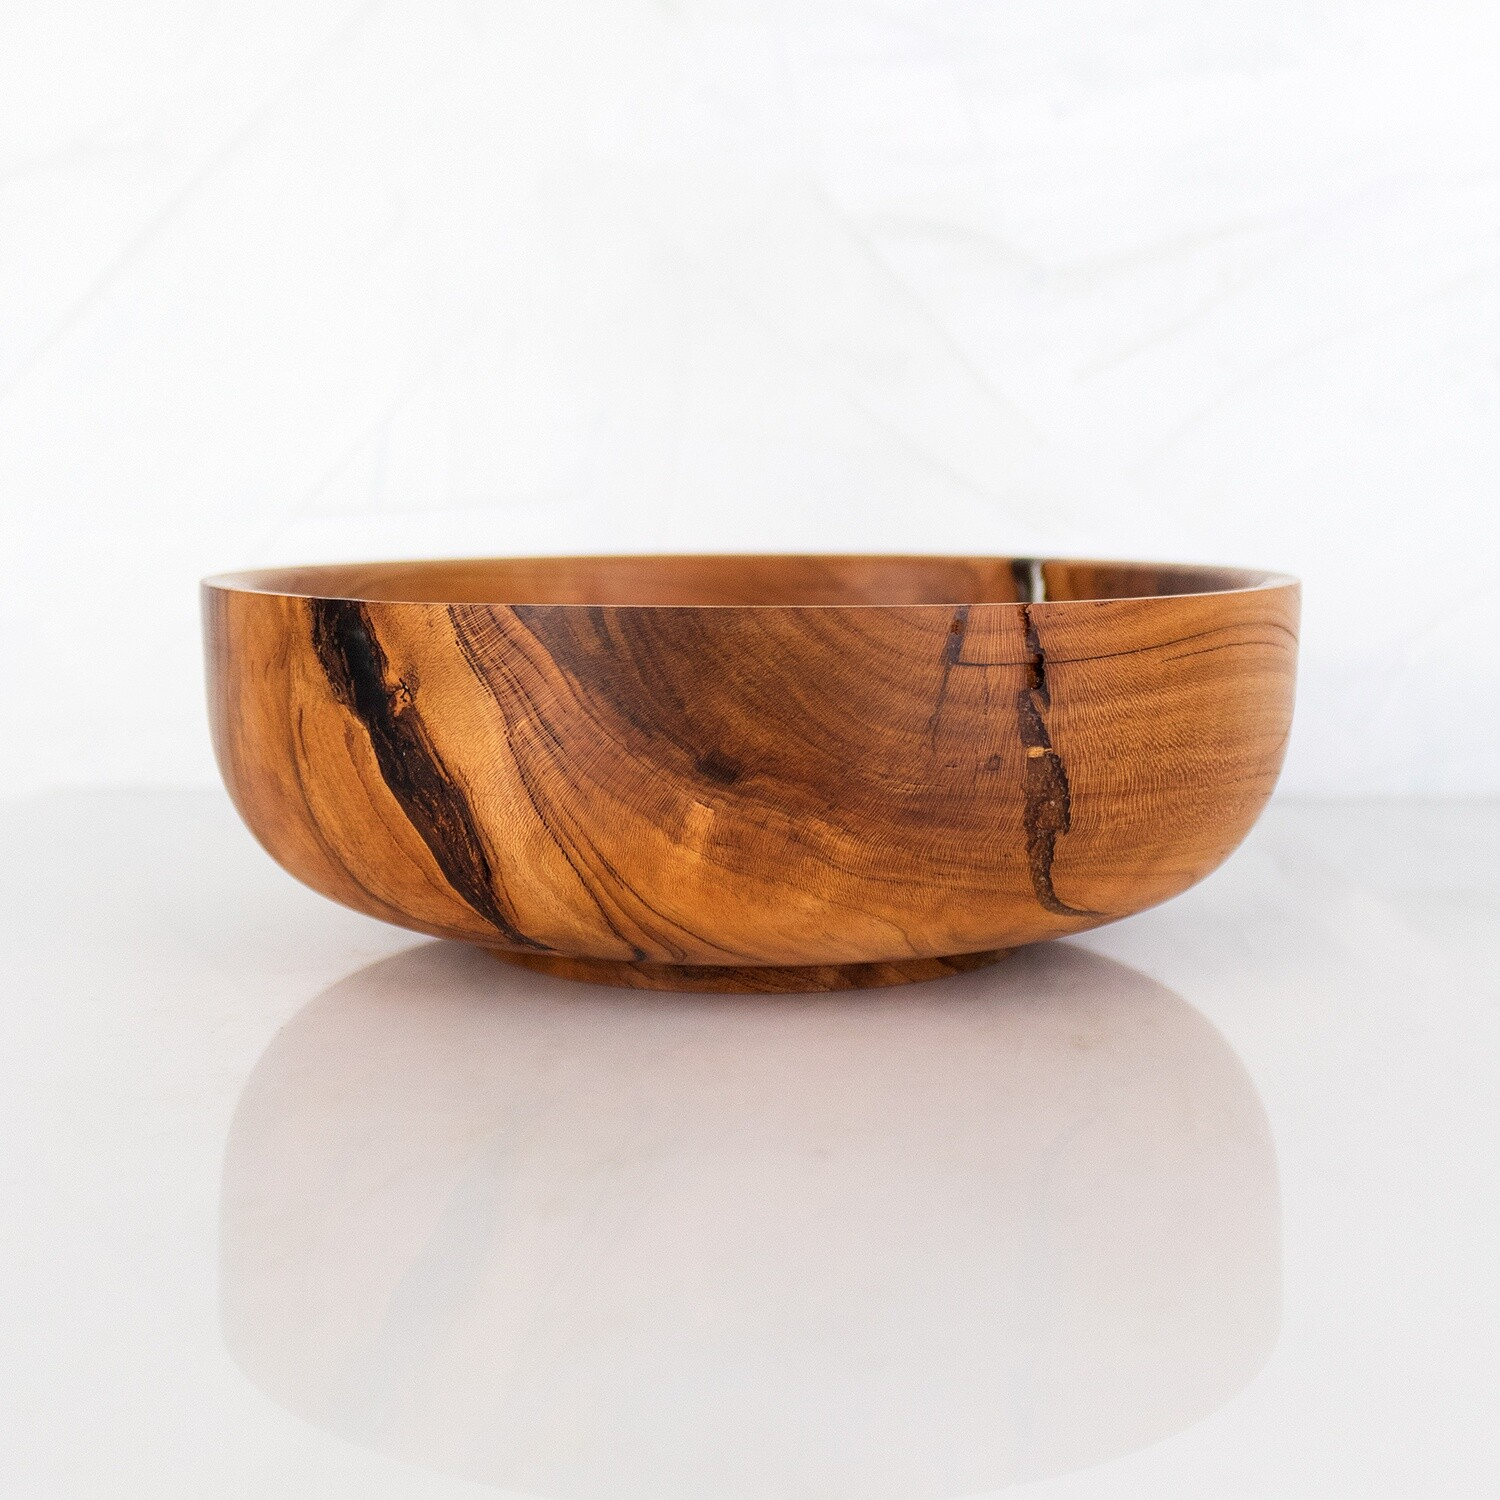 Cherry Wood Bowl, FREYA, Hand Turned Wooden Dish